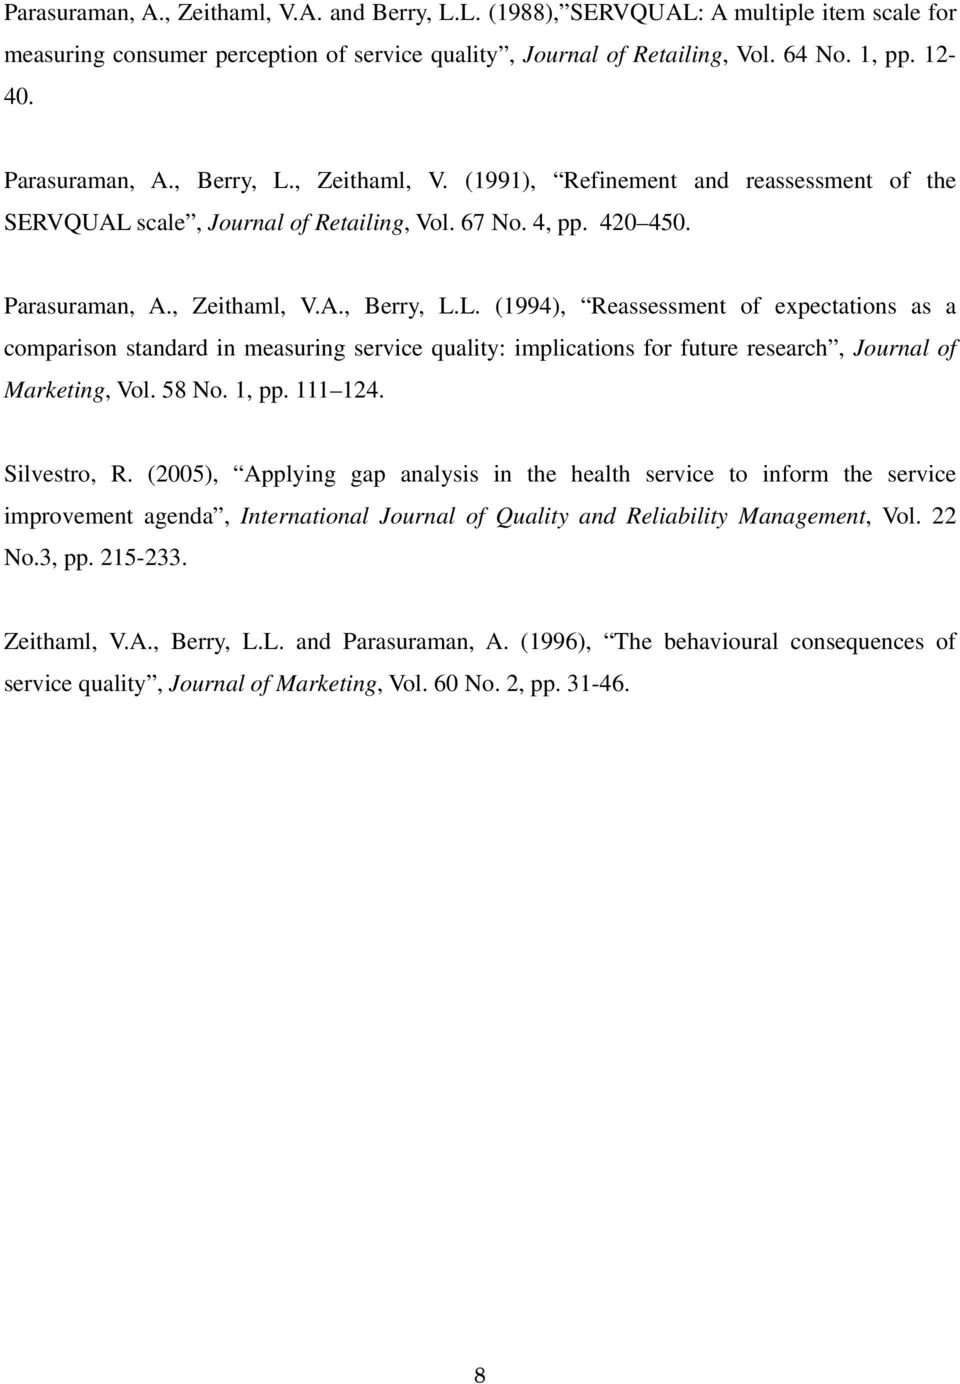 58 No. 1, pp. 111 124. Silvestro, R. (2005), Applying gap analysis in the health service to inform the service improvement agenda, International Journal of Quality and Reliability Management, Vol.